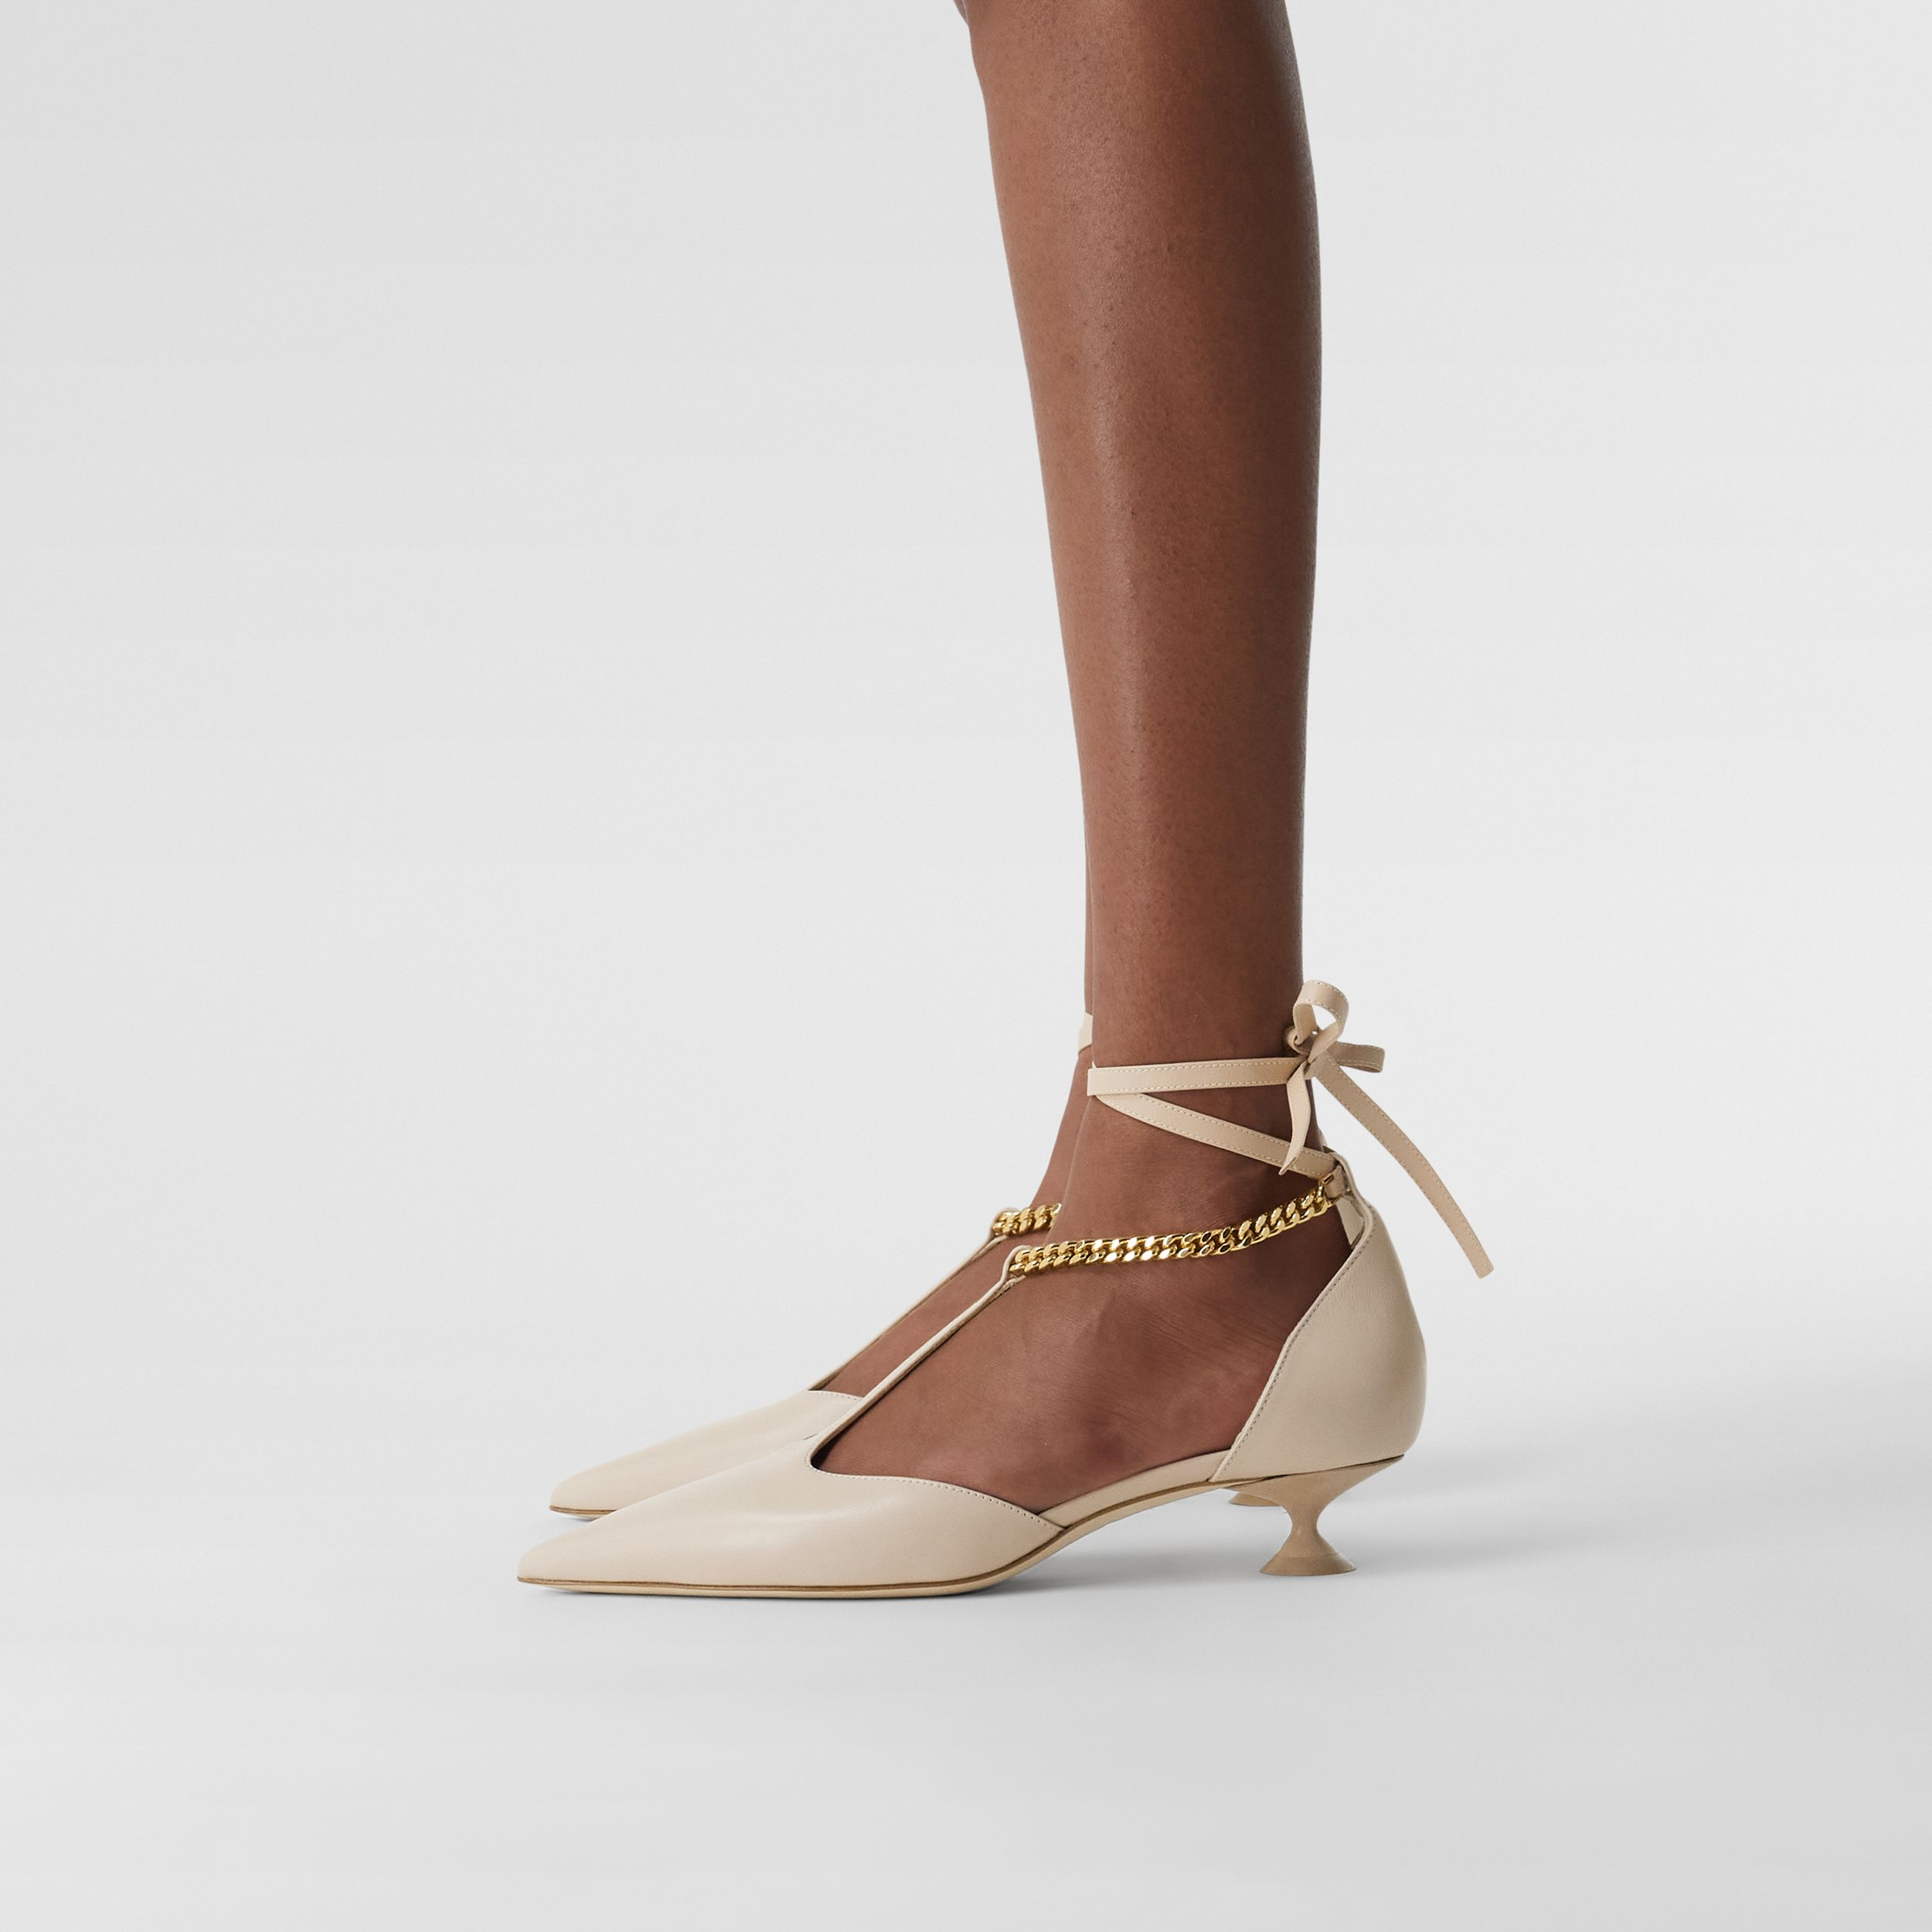 Chain Detail Lambskin Pumps in Nude - Women | Burberry - 3